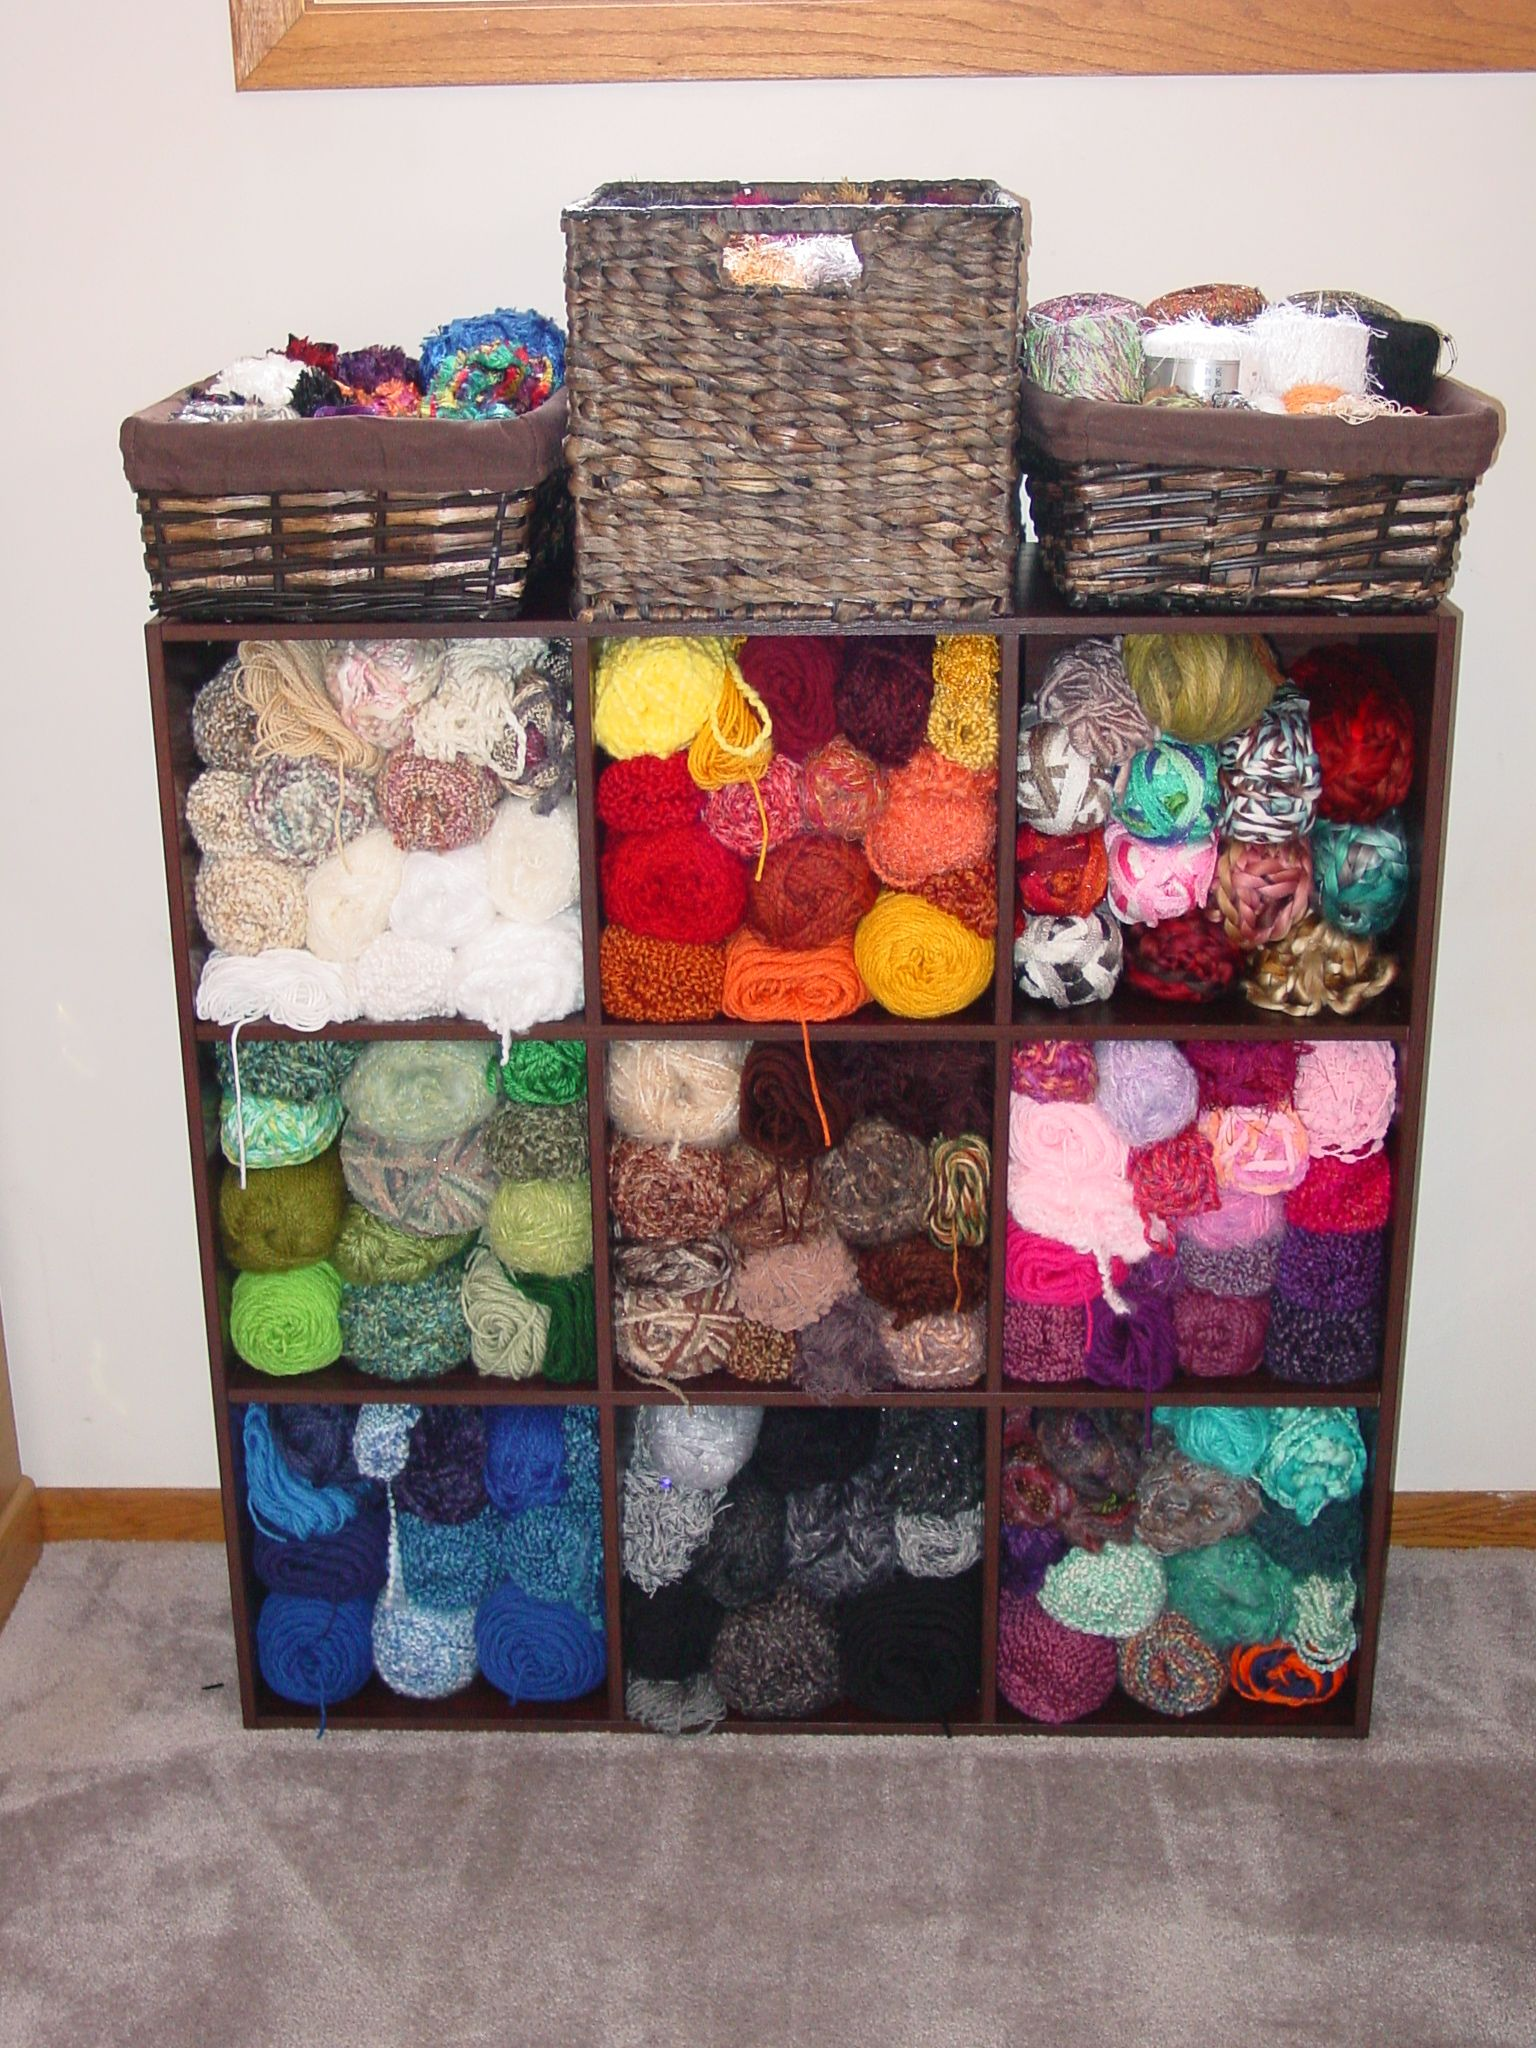 Attirant Very Easy And Affordable Yarn Storage Idea. Wooden Storage Cube Shelf And  Baskets.